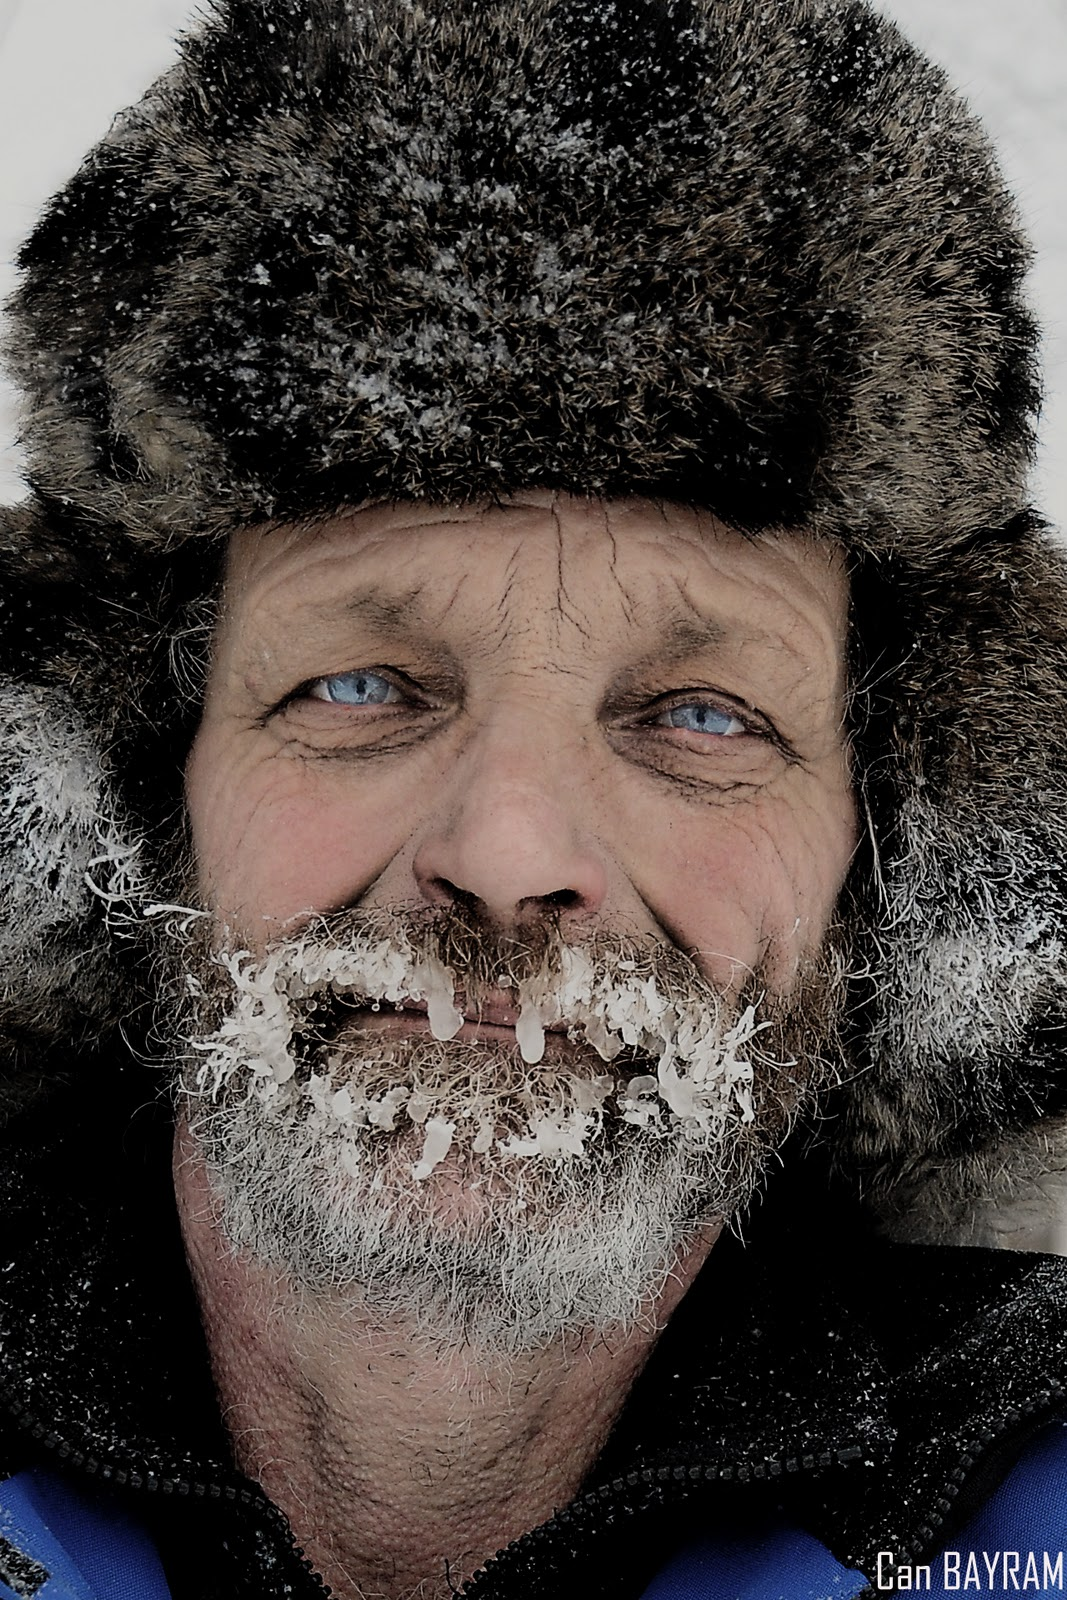 iced beard on a man with blue eyes and a fur hat